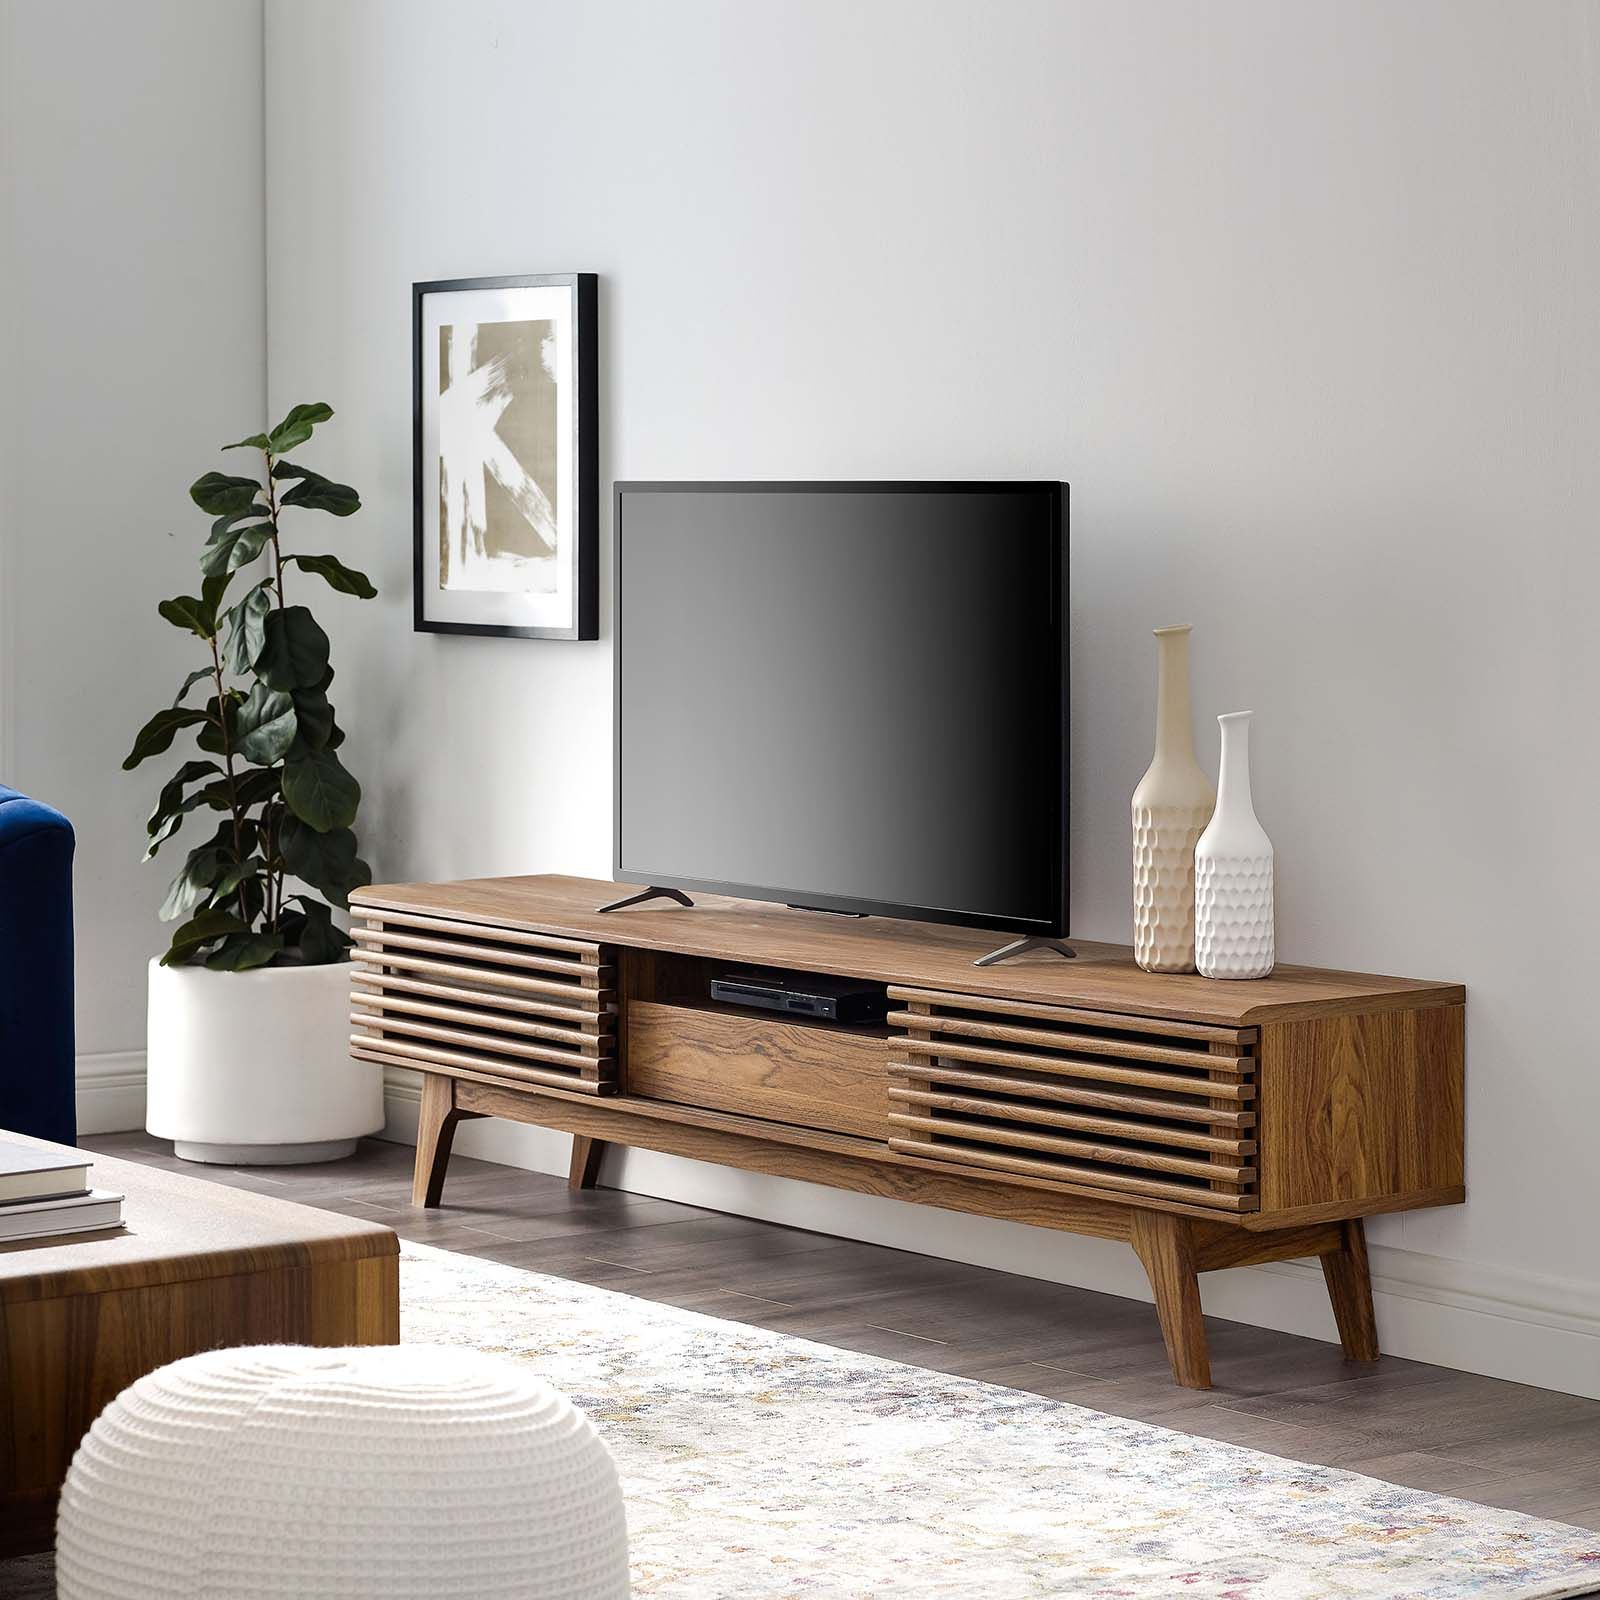 Modway Render 70 Tv Stand In 2021 Tv Stand Decor Living Room Tv Stand Wood Tv Stand Decor